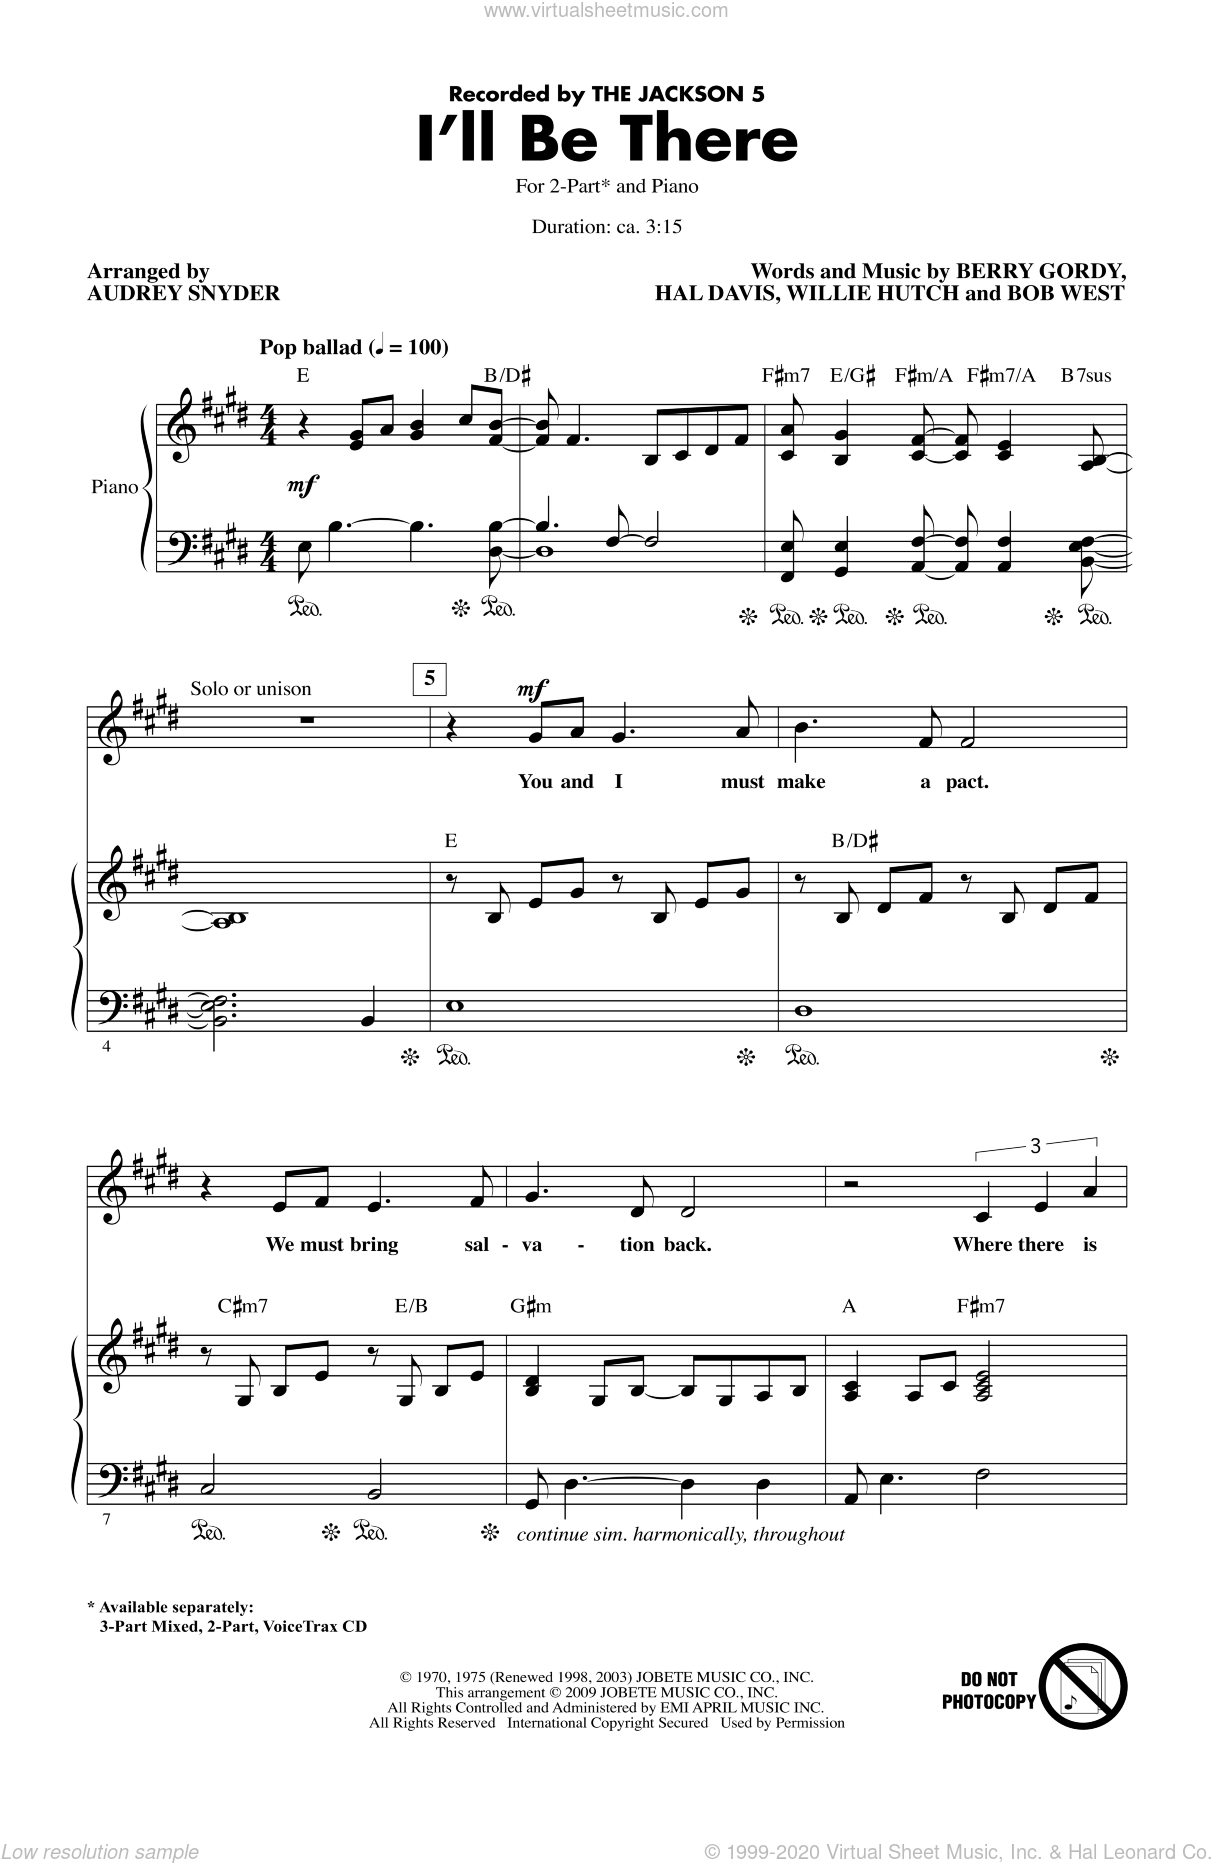 I'll Be There sheet music for choir (2-Part) by Berry Gordy, Bob West, Hal Davis, Willie Hutch, Audrey Snyder, Michael Jackson and The Jackson 5, intermediate duet